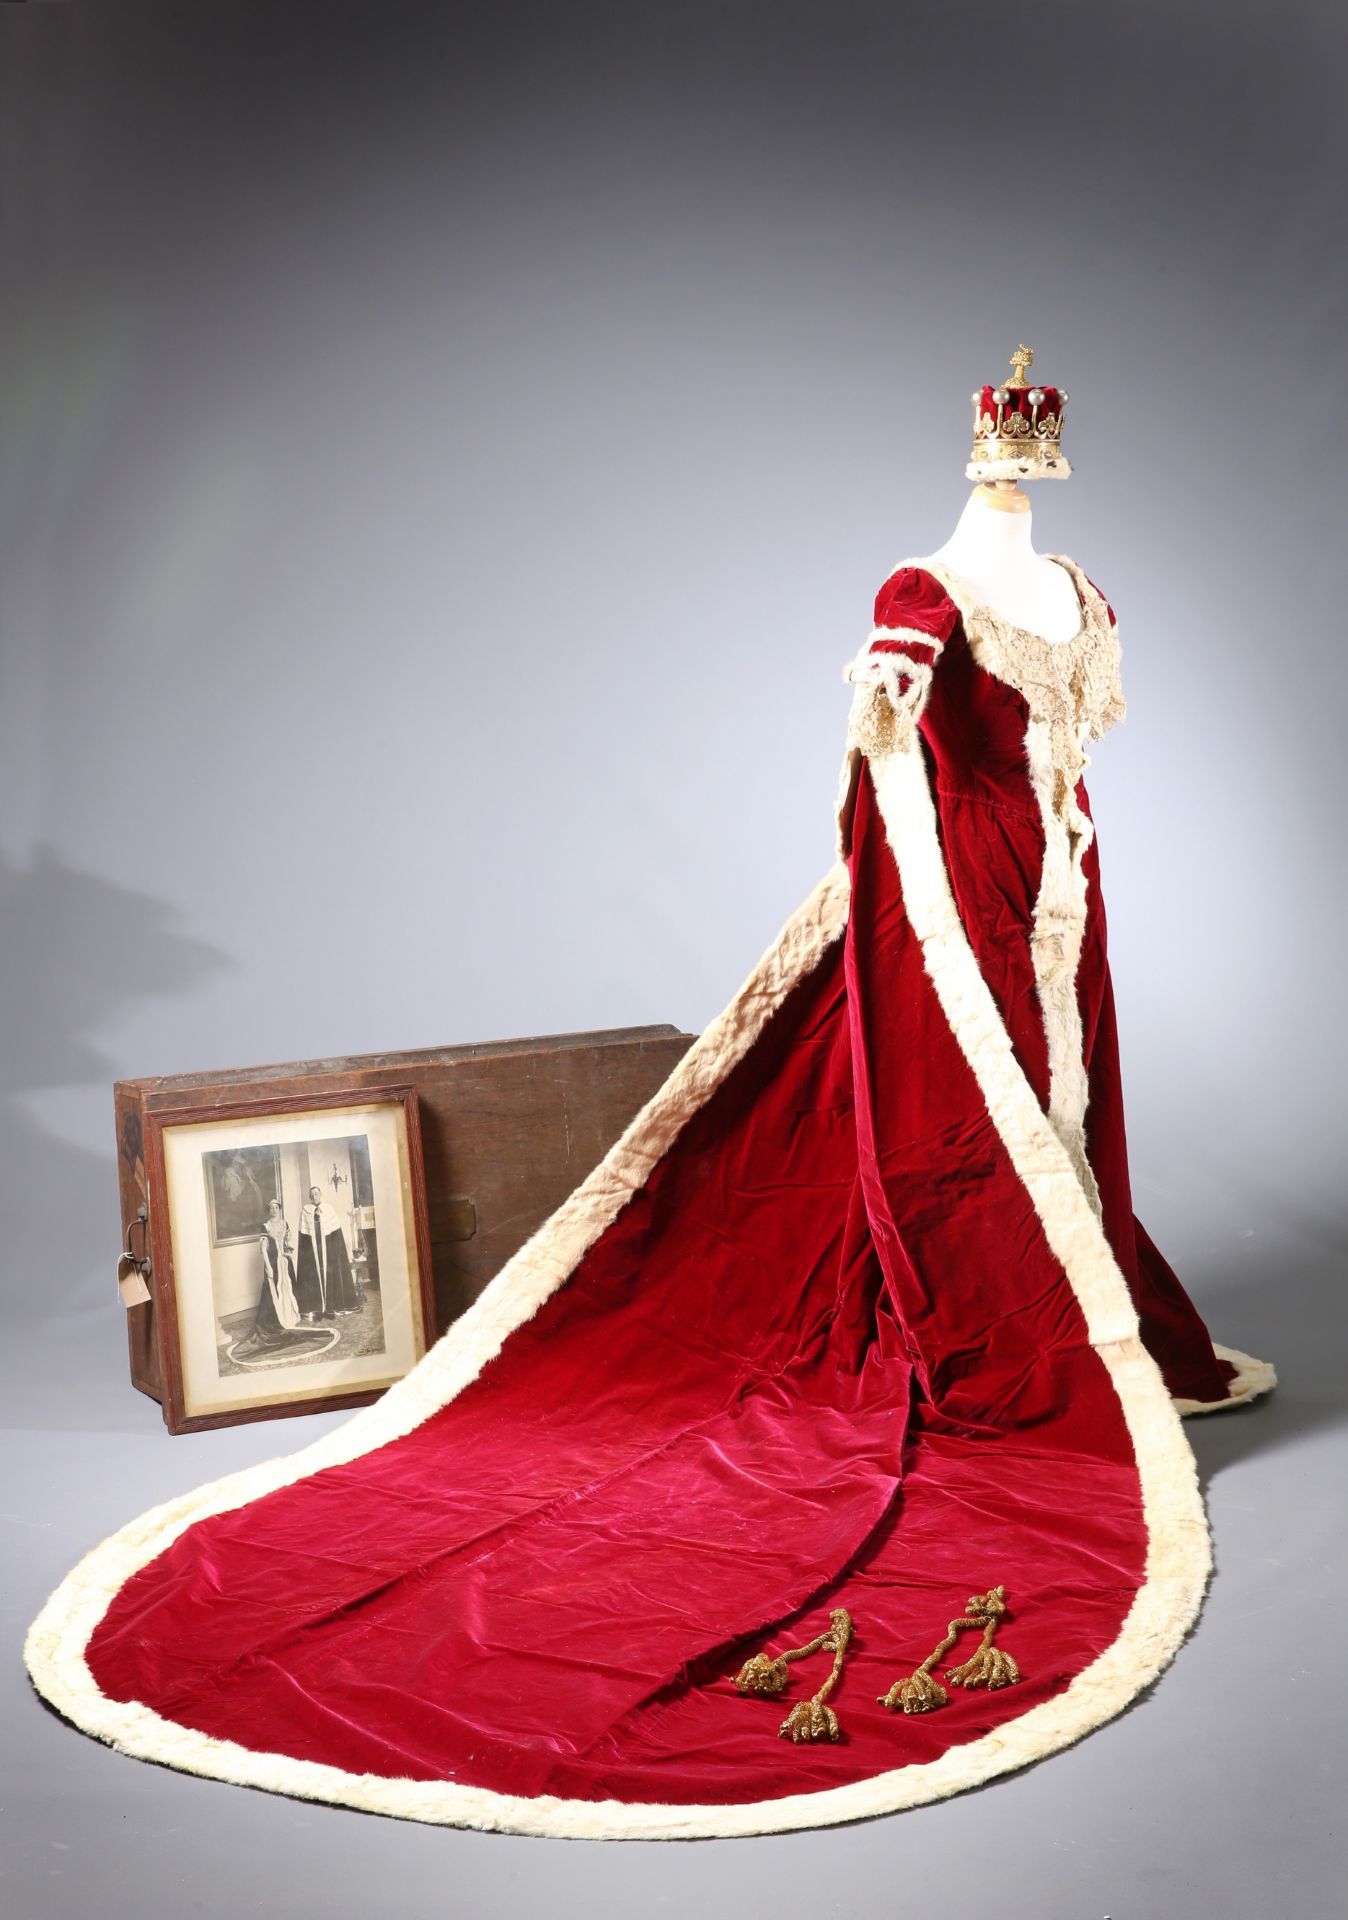 ~ THE CORONATION ROBES OF THE COUNTESS OF GUILFORD by Ede, Son & Ravenscroft, crimson velvet trimmed - Bild 3 aus 5